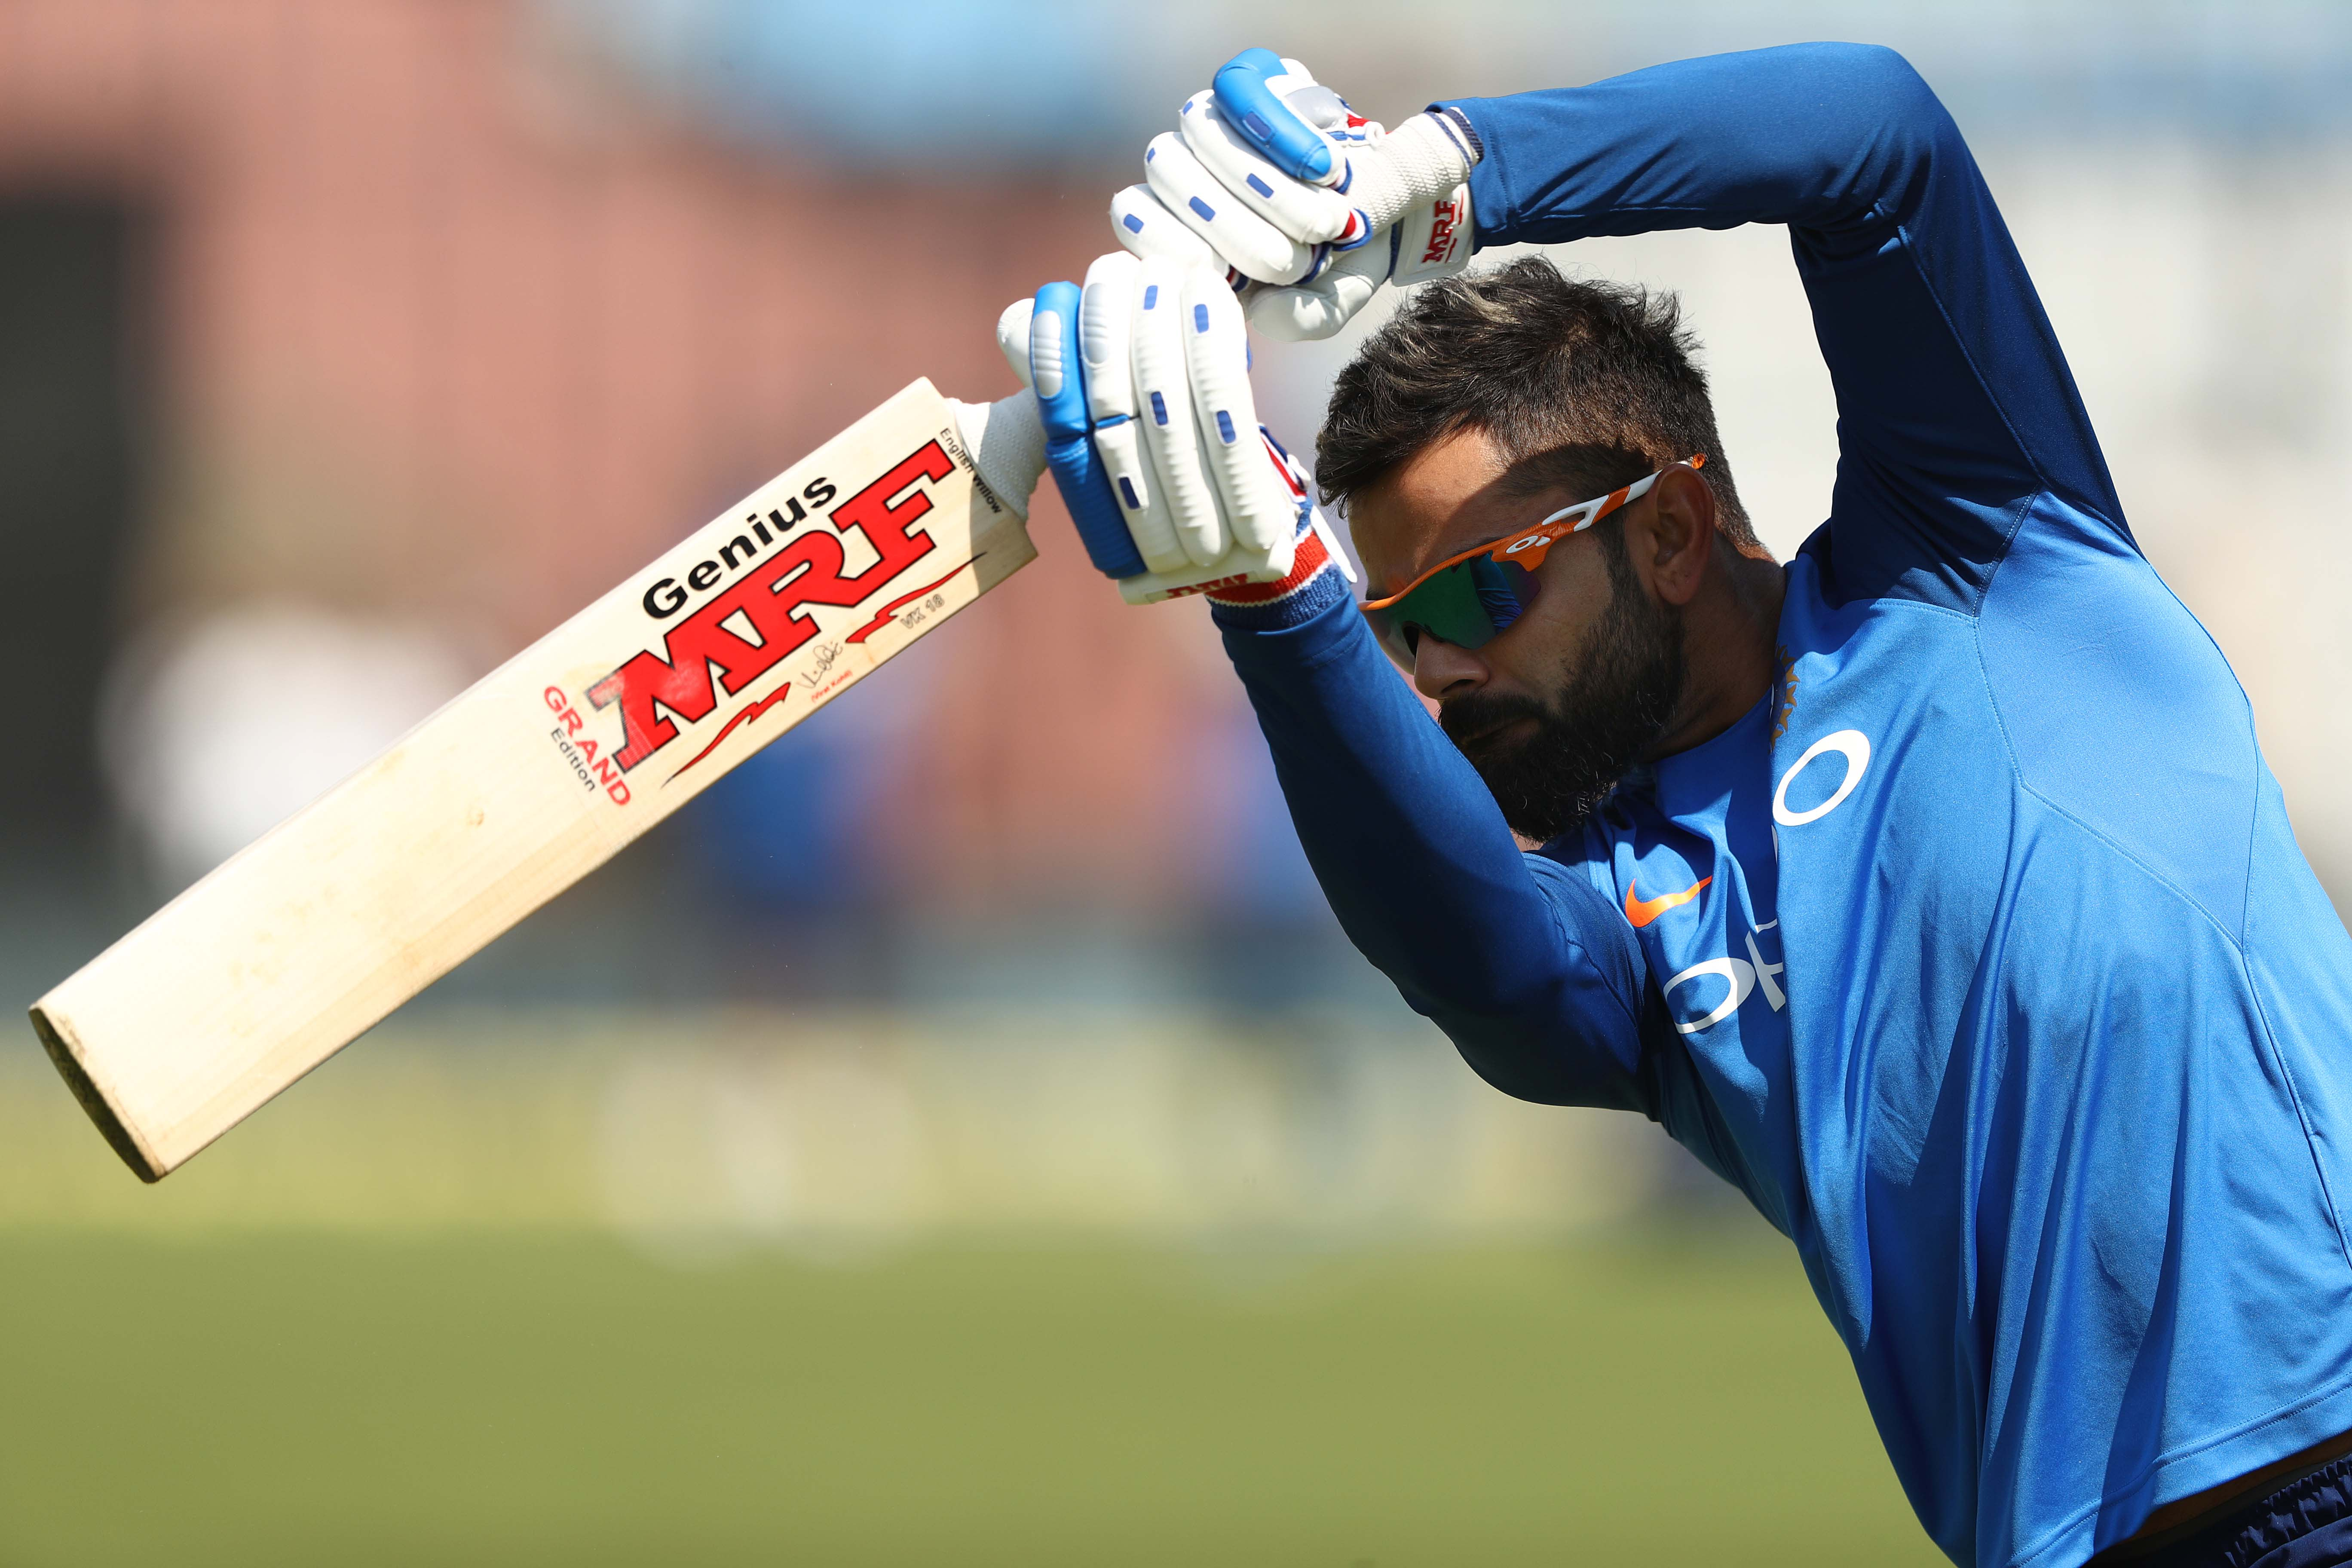 India Is Already The Big Winner From The Cricket World Cup